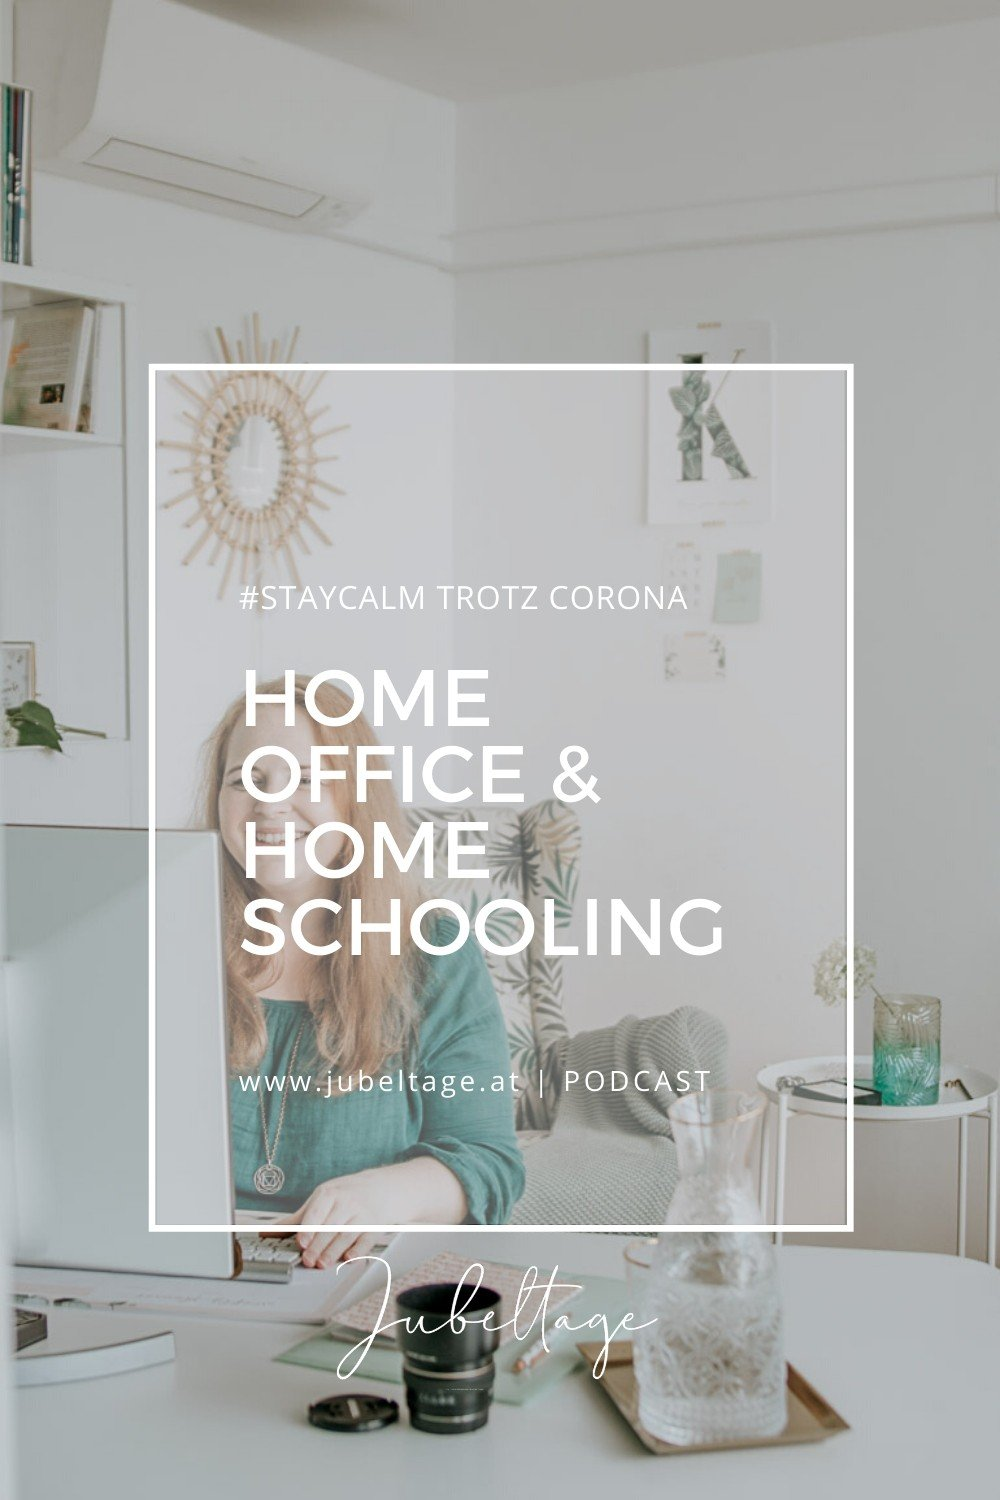 Jubeltage Podcast: Homeoffice und Homeschooling